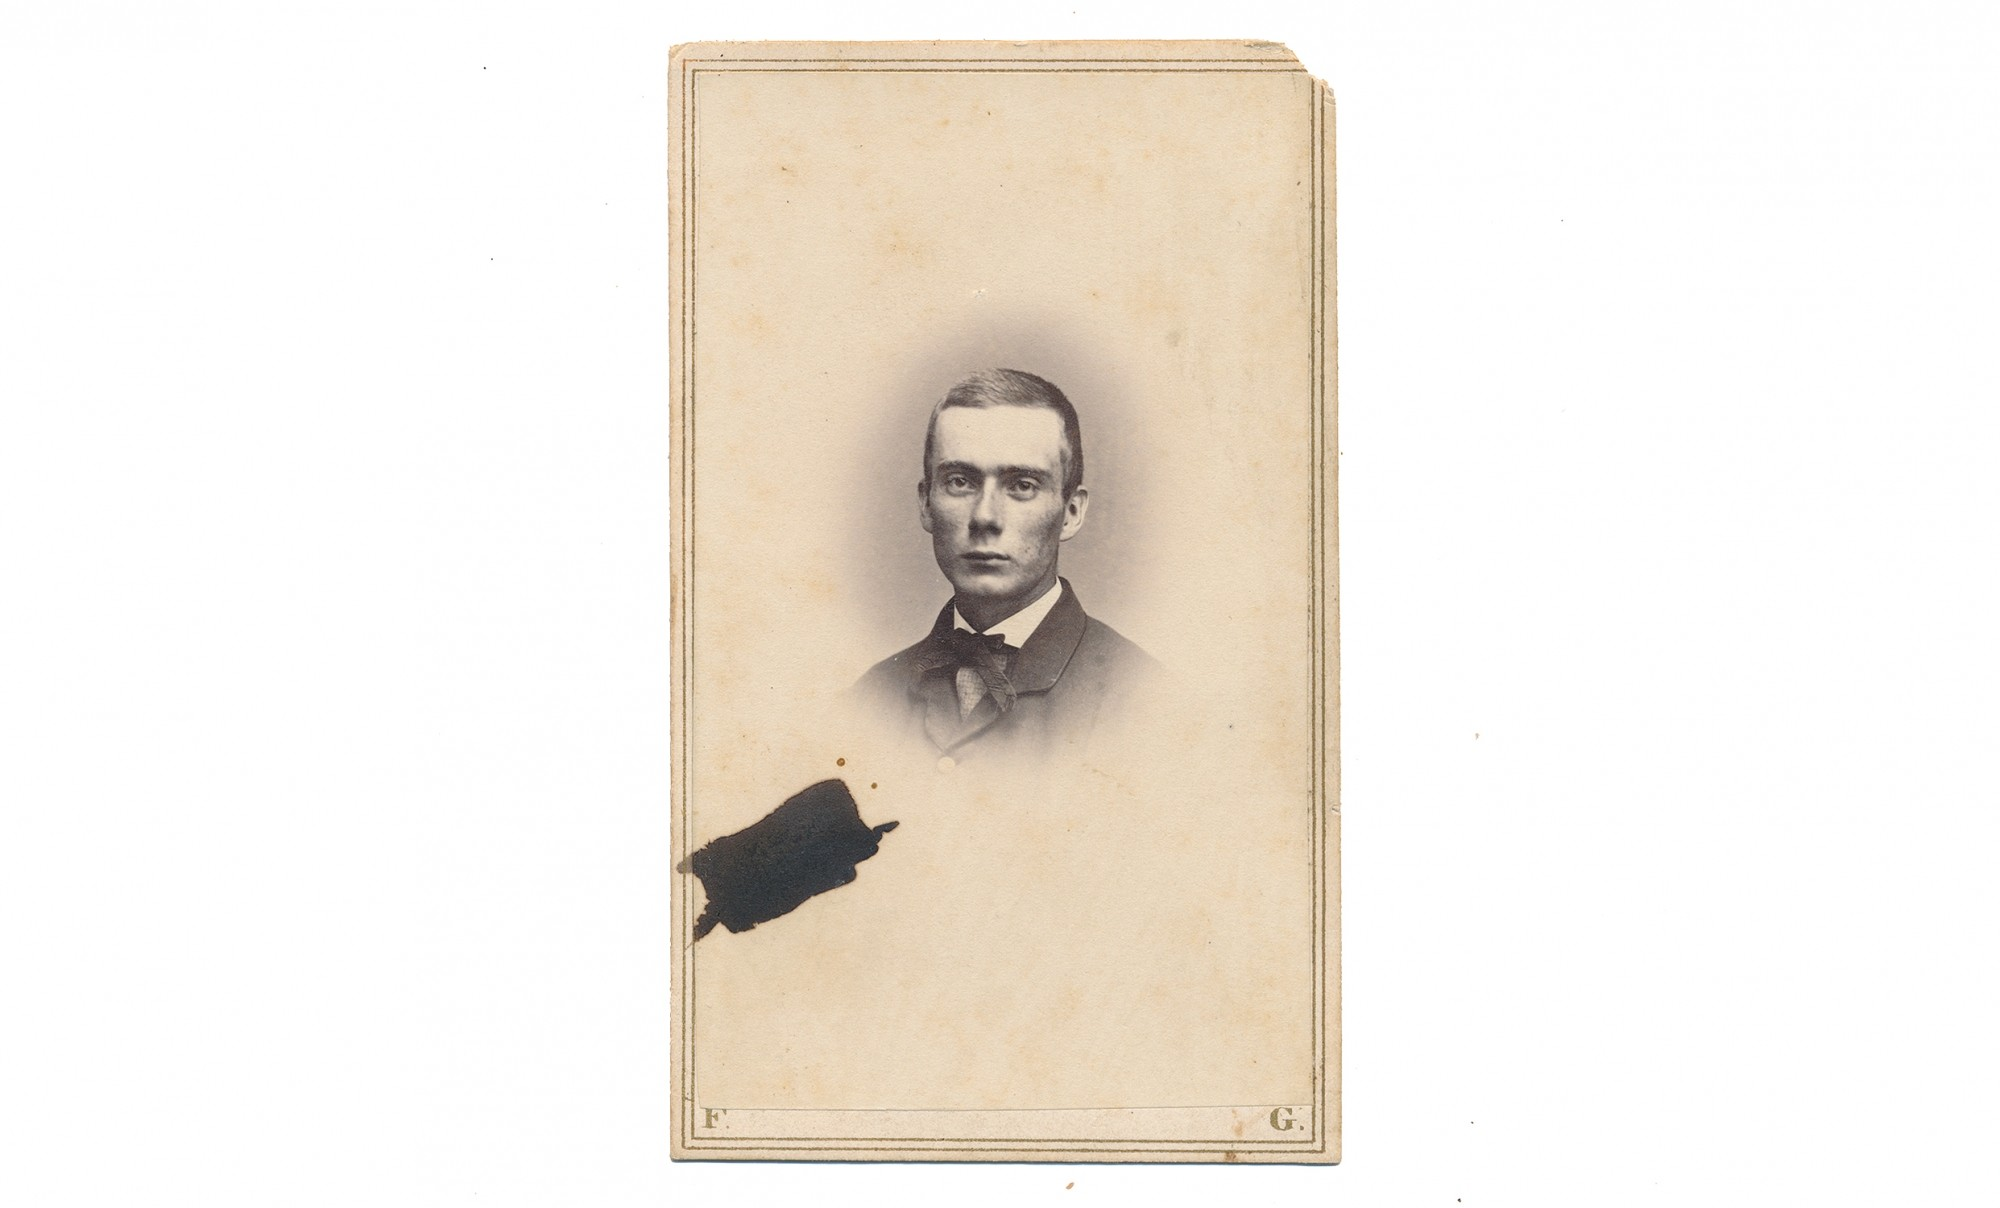 CDV BUST VIEW OF 4TH VERMONT CORPORAL